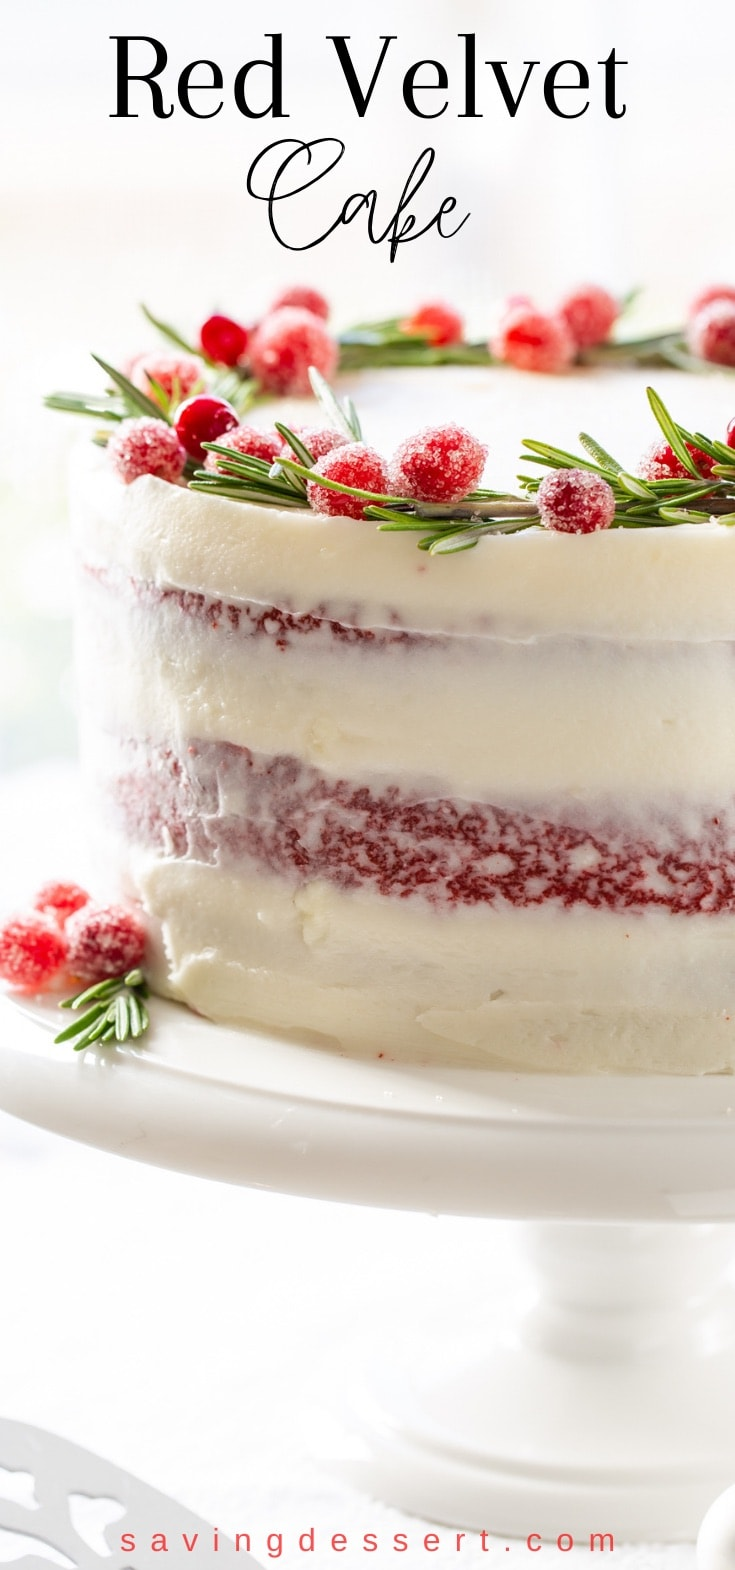 A side view of a naked Red Velvet Cake with cream cheese frosting and sugared cranberries